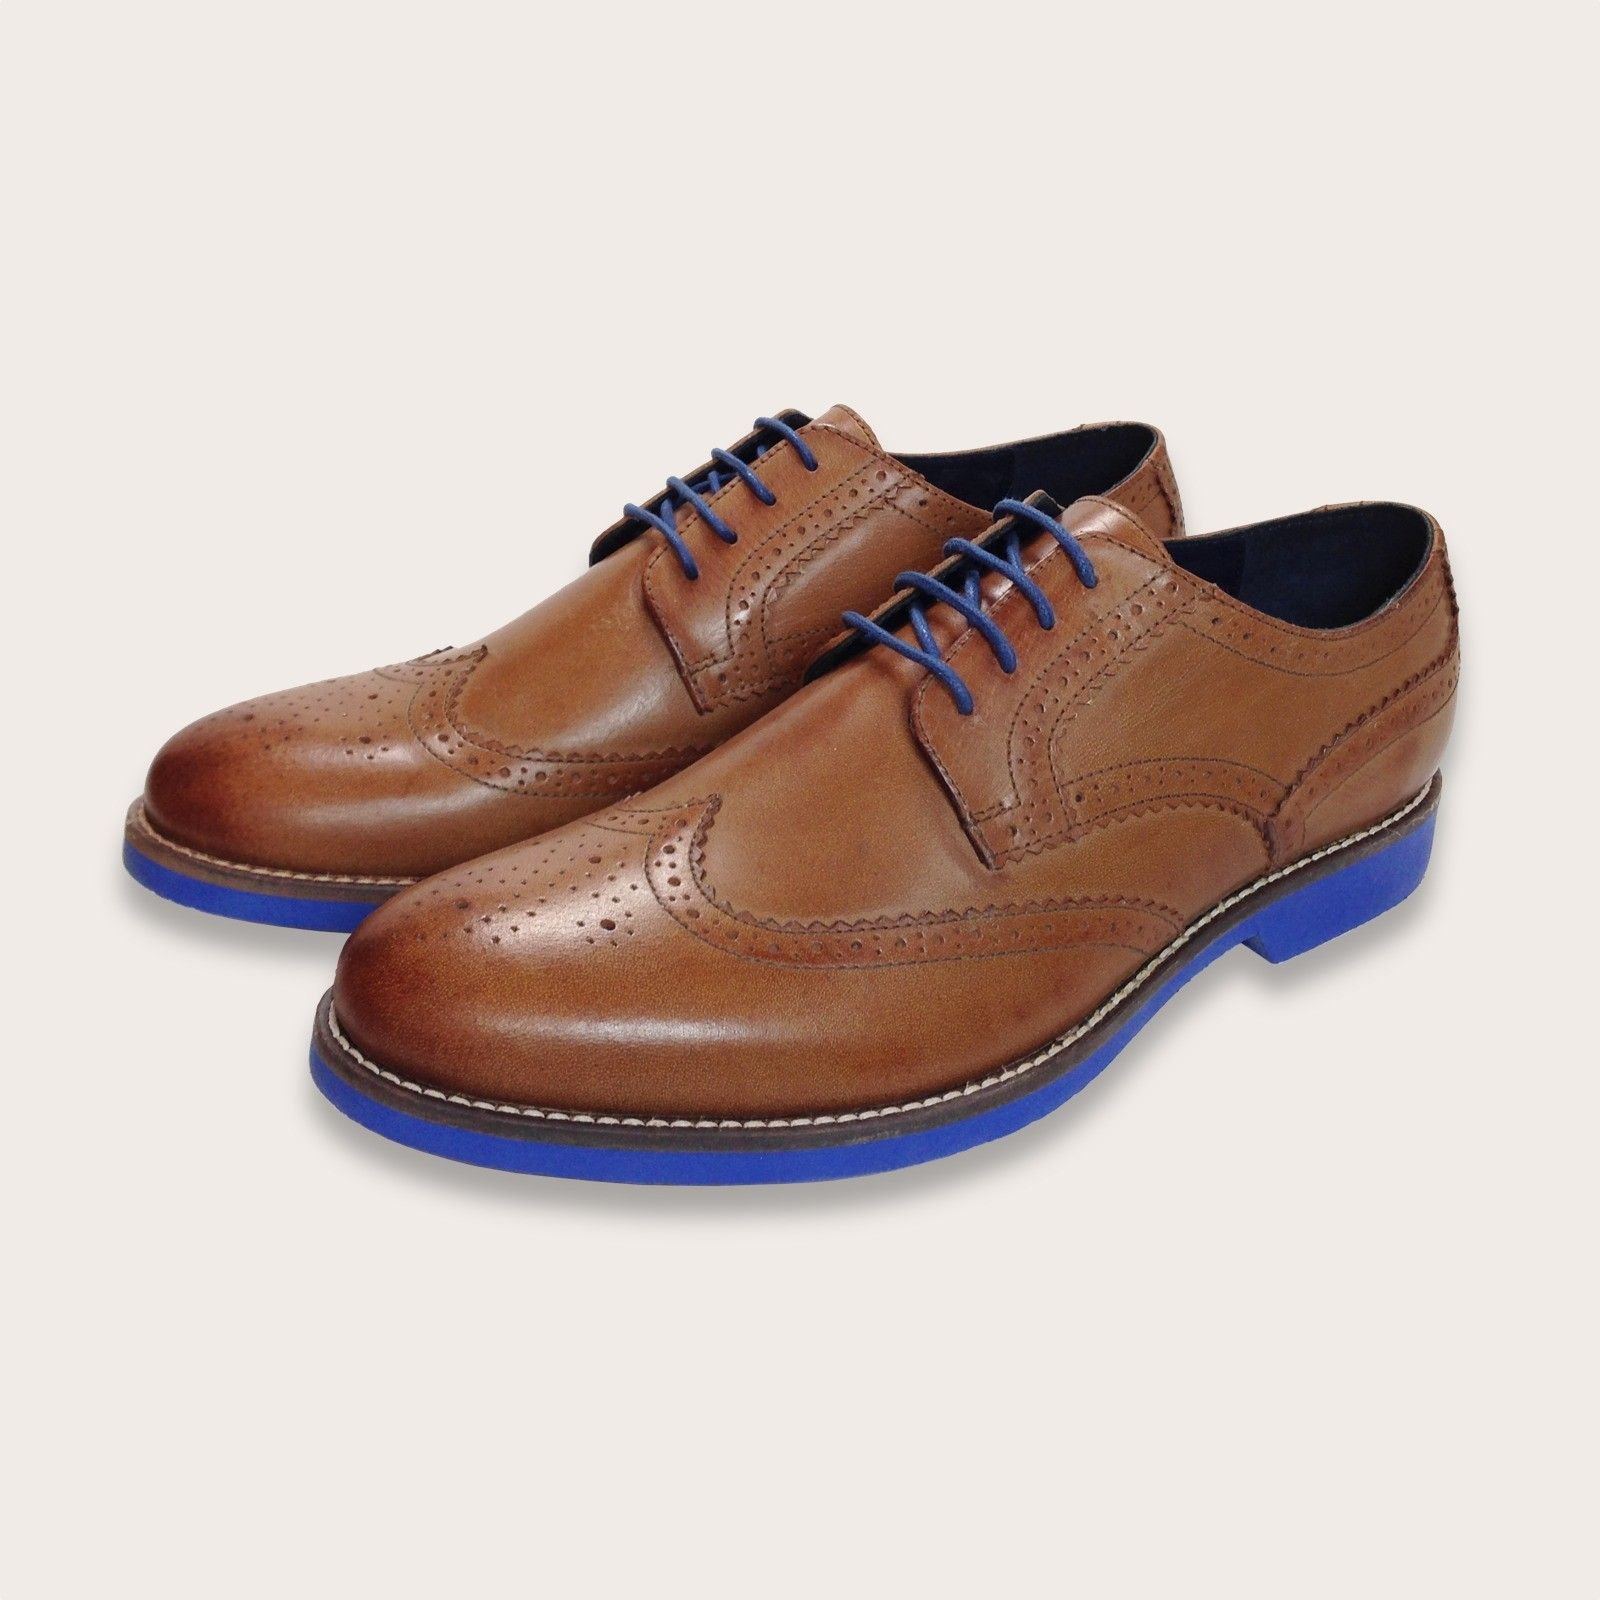 Men's Leather Shoes from £35 Free UK Delivery. Leather